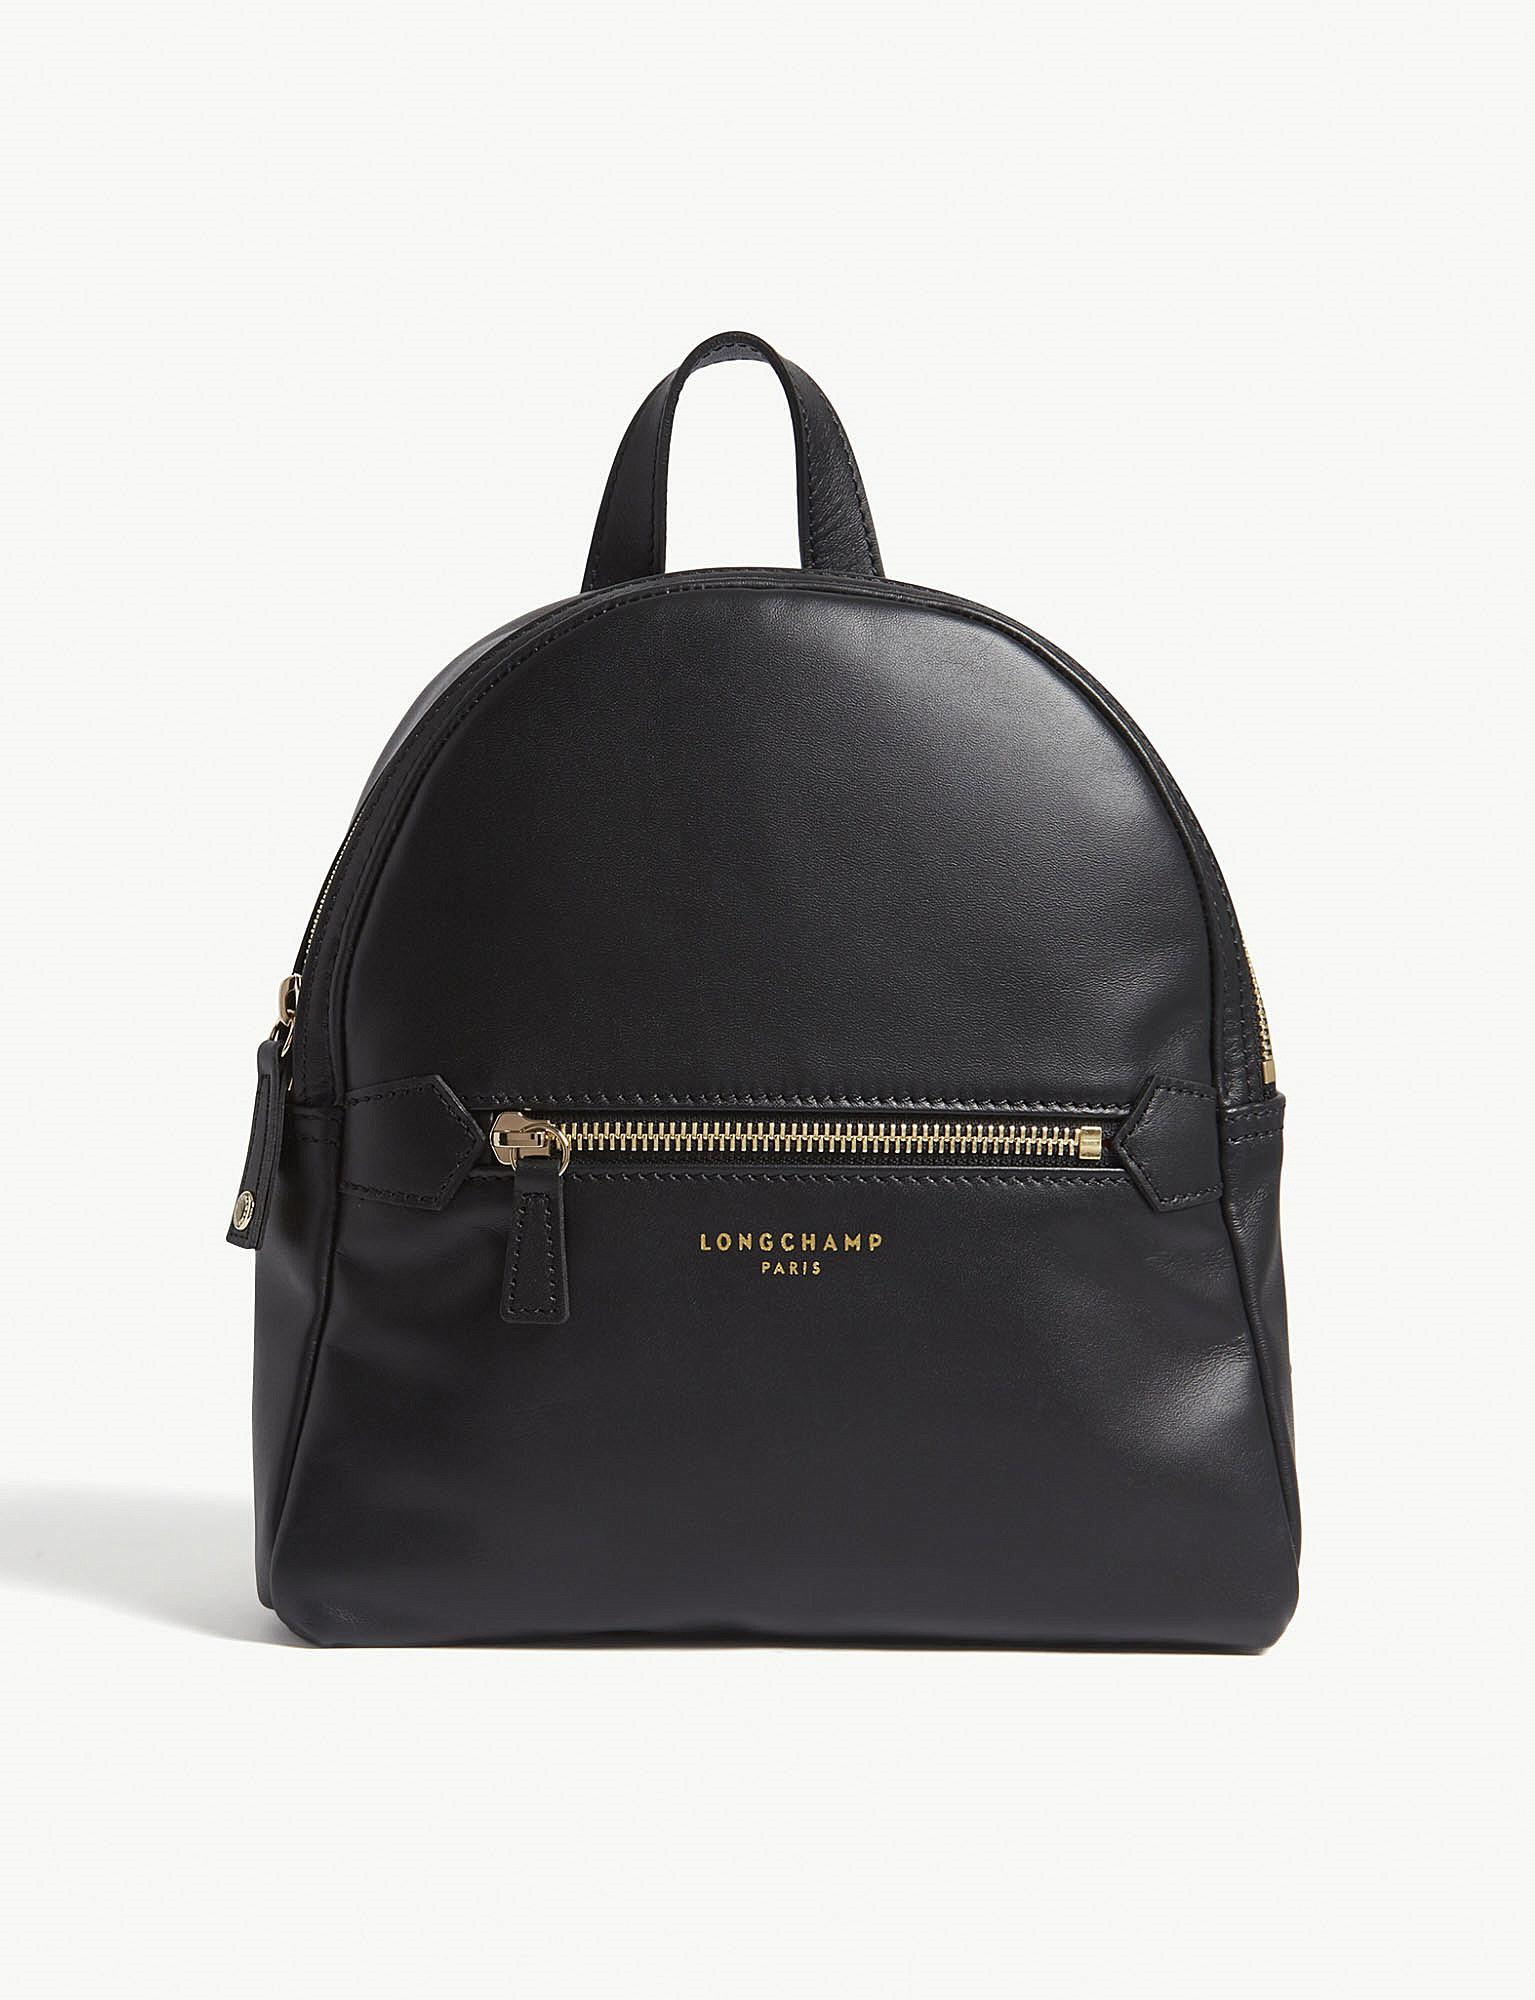 ad02b2a92df2 Longchamp 2.0 Extra-small Leather Backpack in Black - Lyst